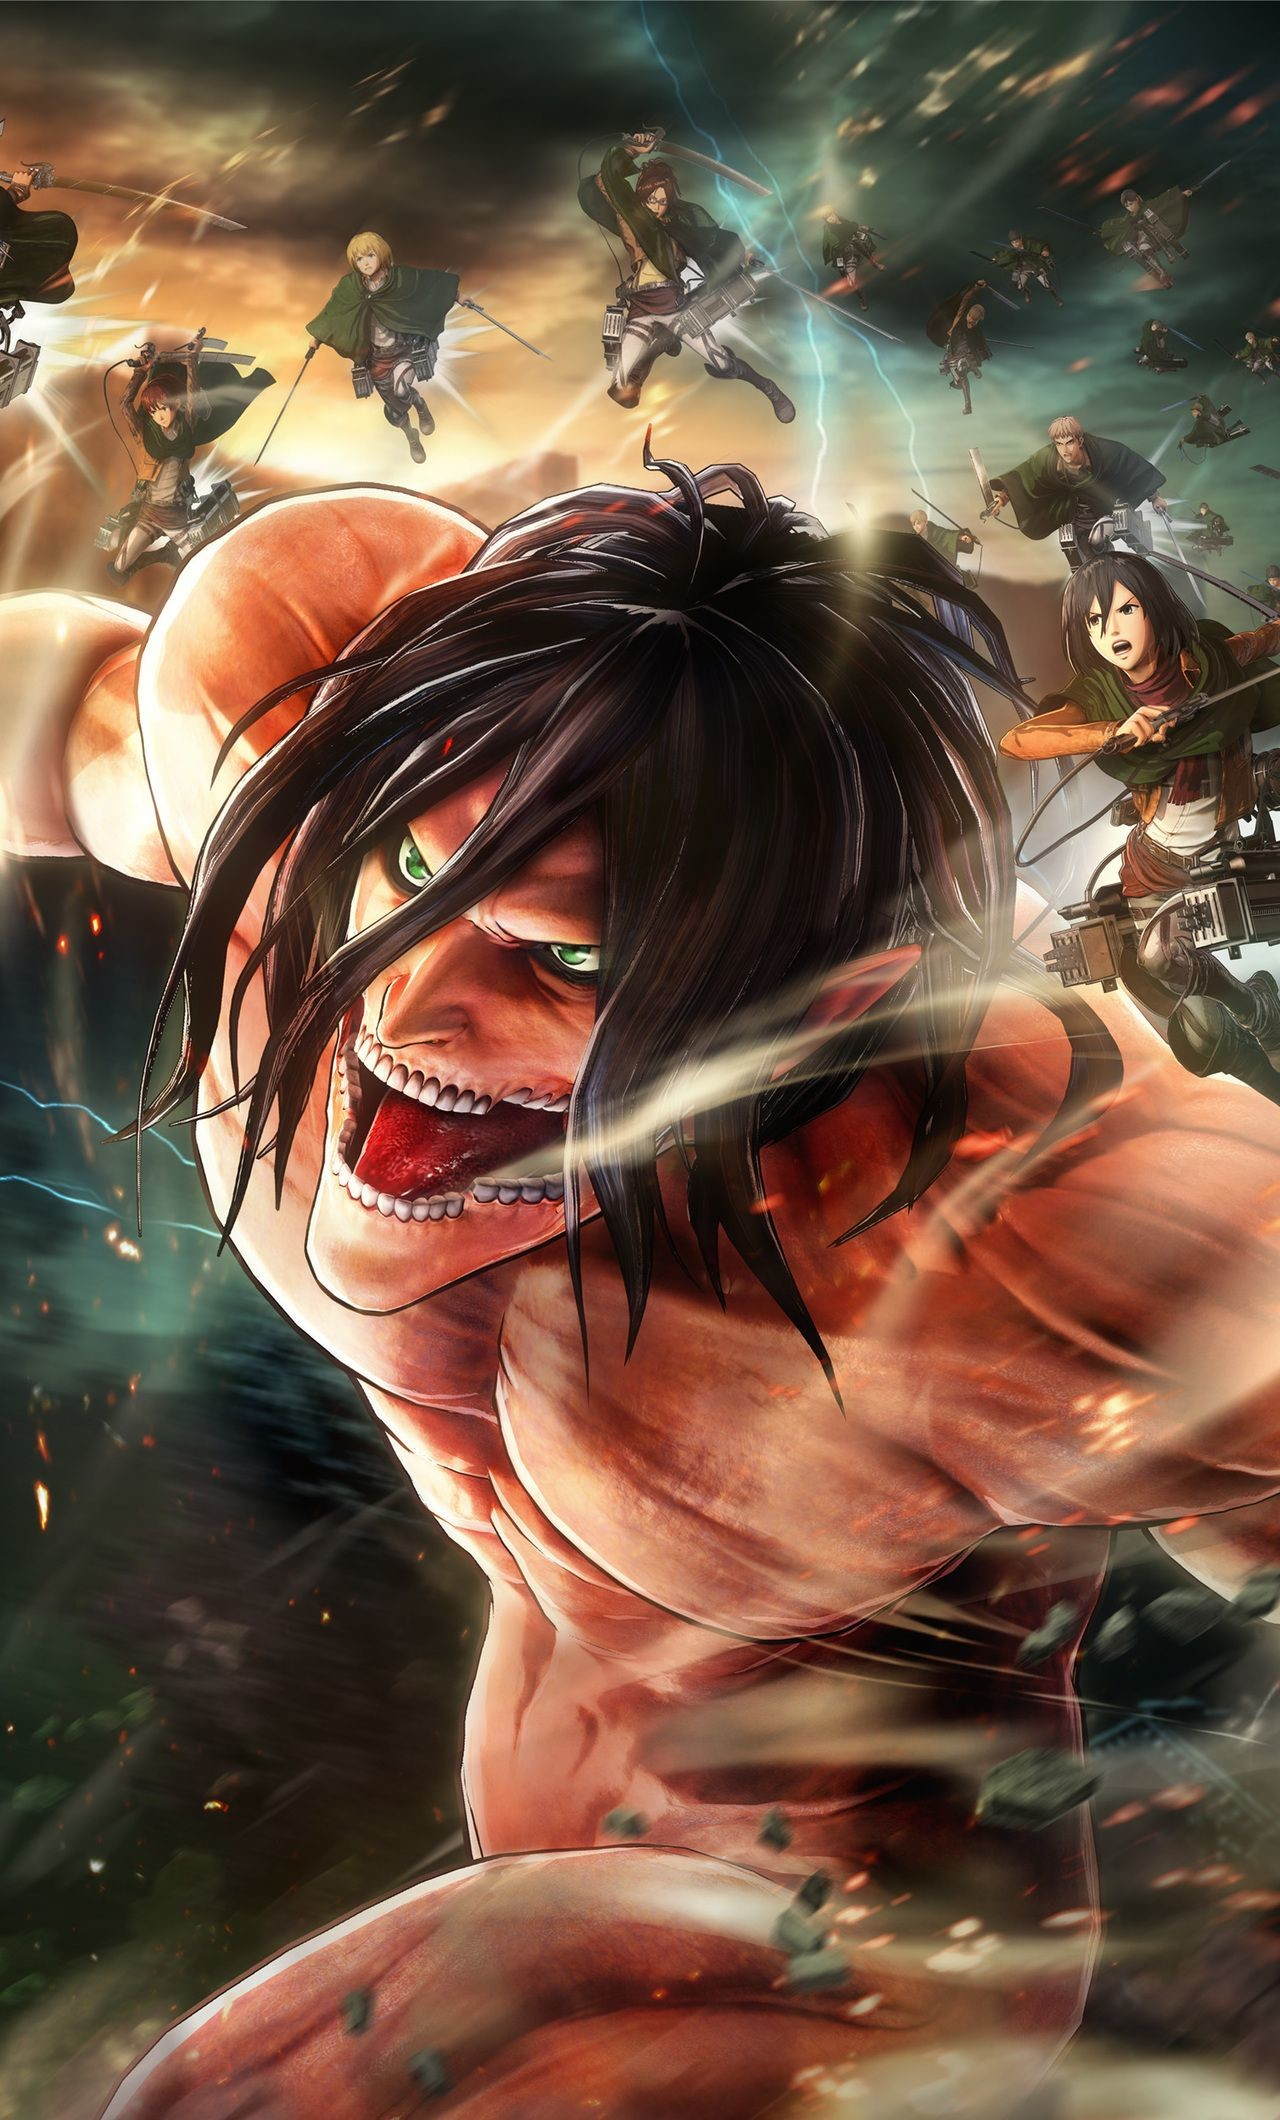 Attack On Titan Wallpaper Attack On Titan Ios Wallpaper Iphone Attack On Titan 1280x2120 Download Hd Wallpaper Wallpapertip